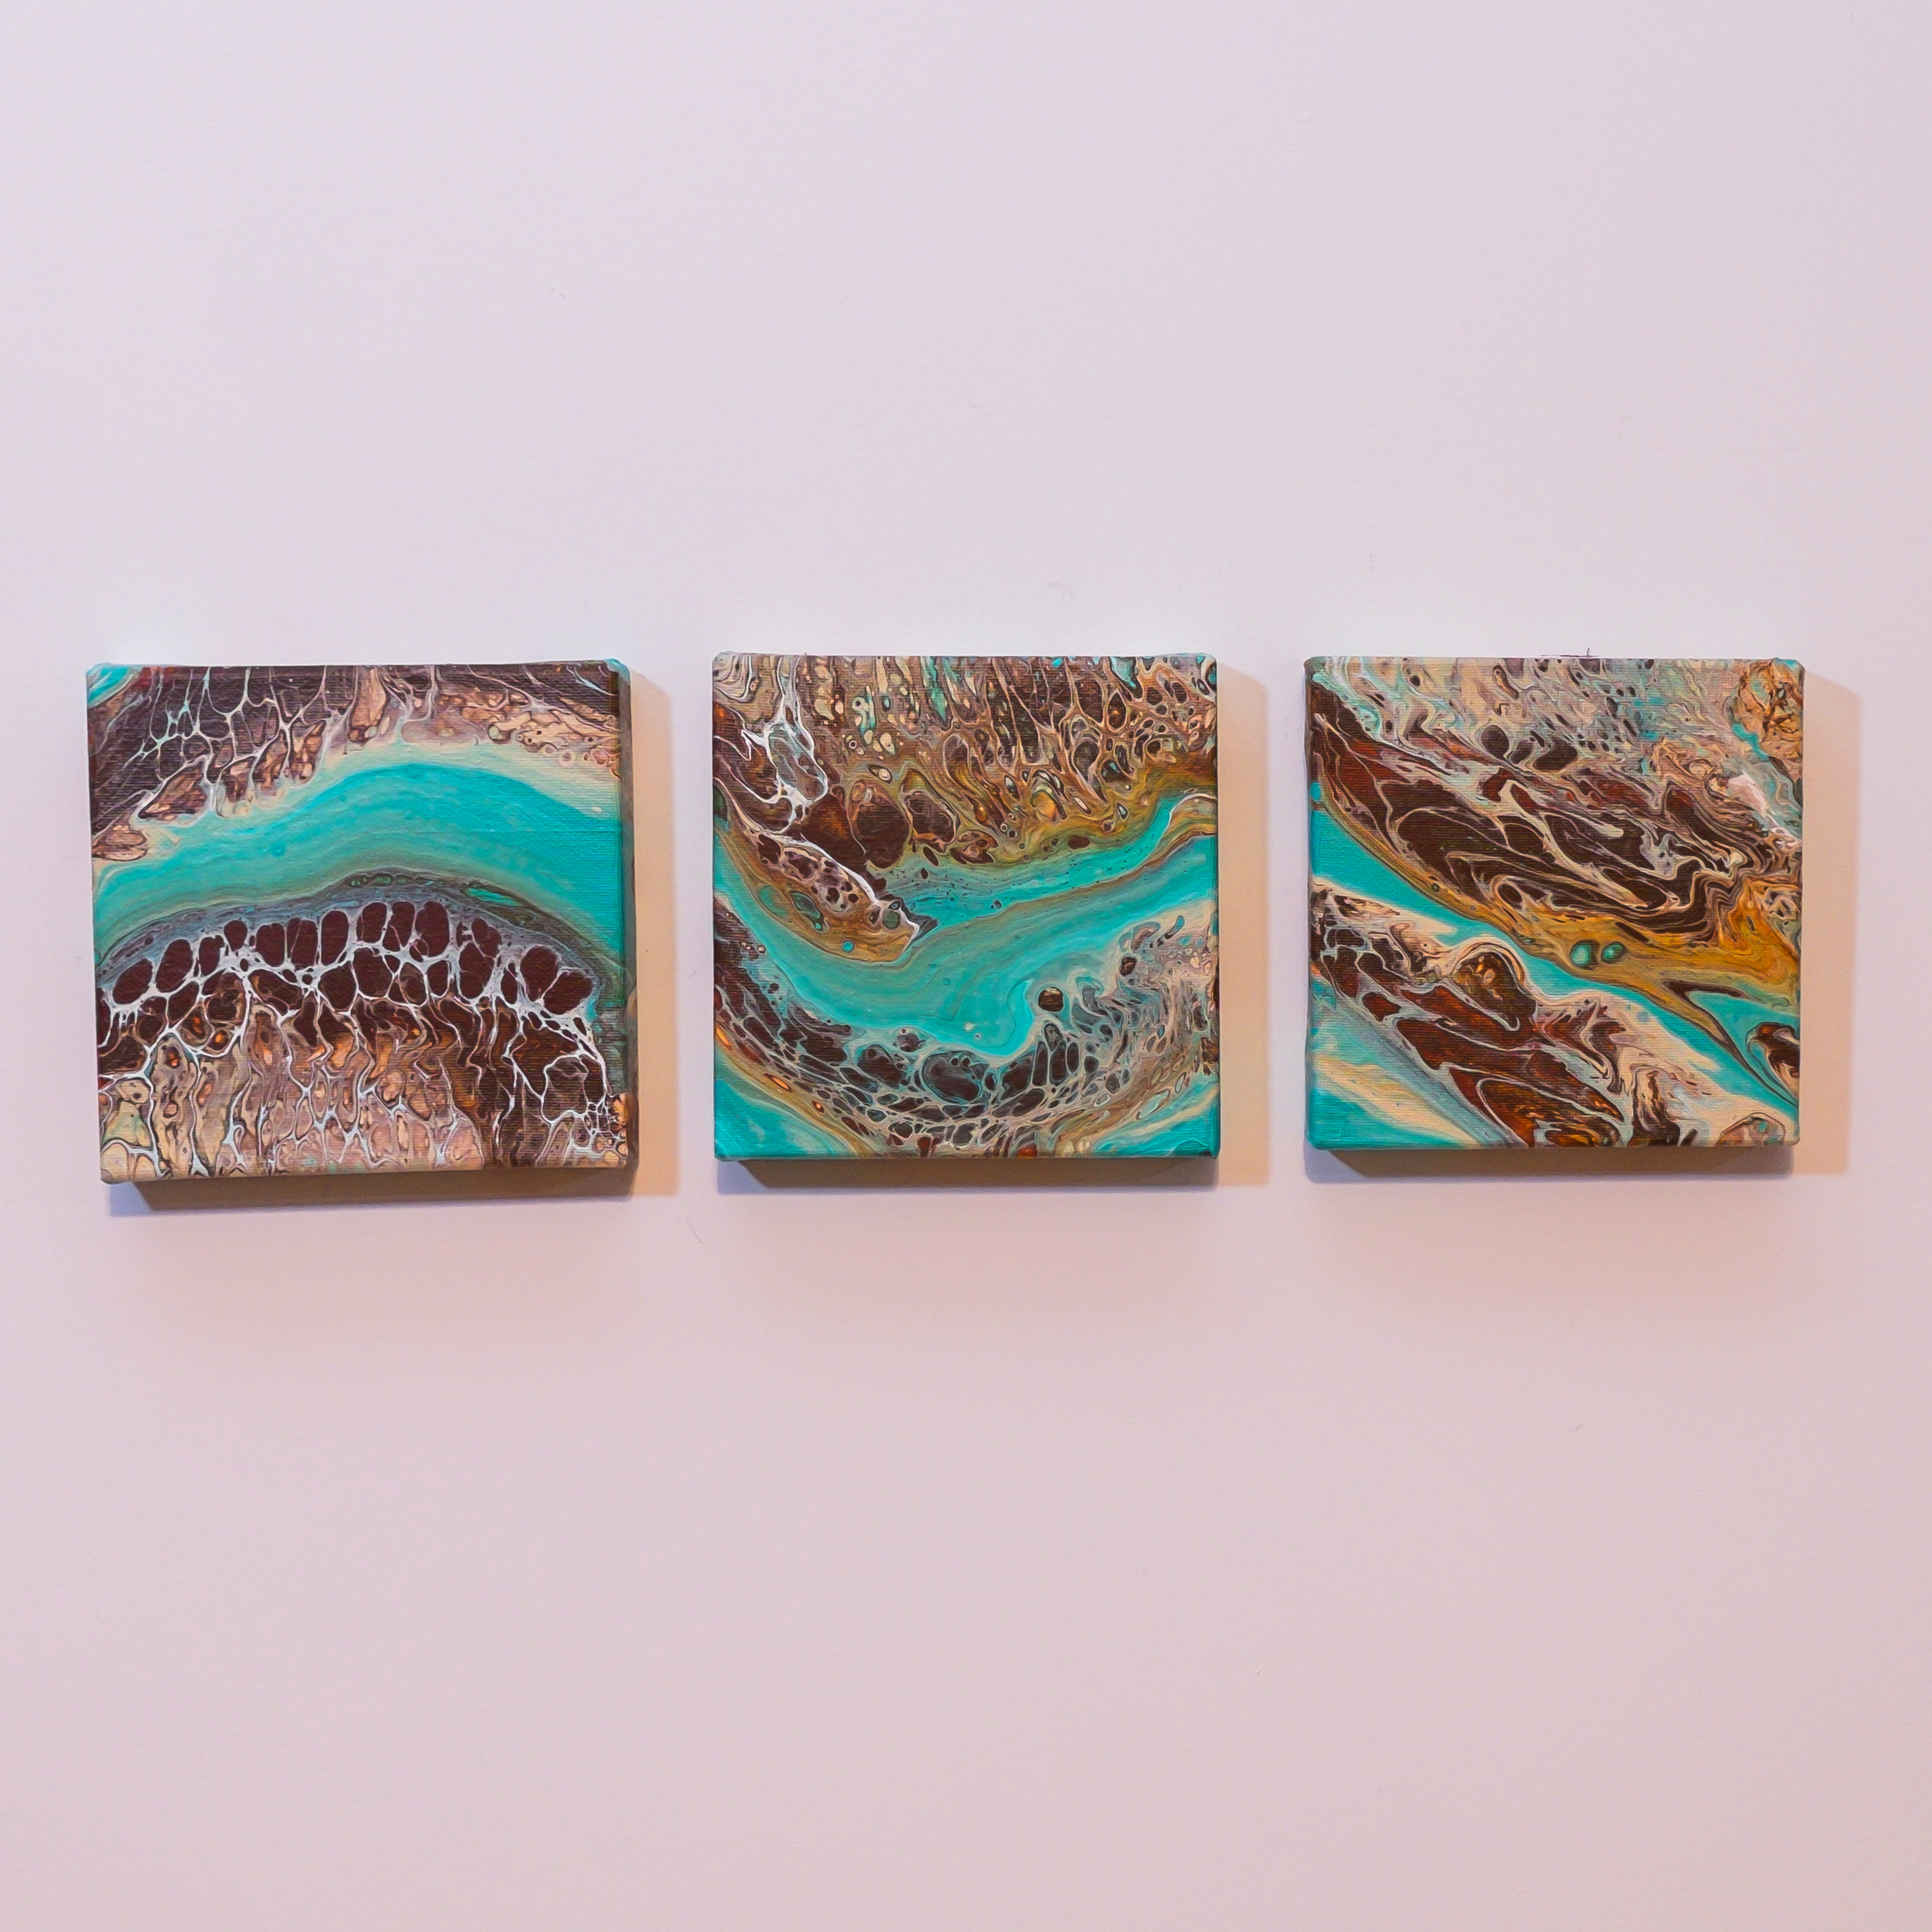 Rocky Bay Artwork by Christina Russell.  Image features a set of three. 6 x 6 inch gallery wrapped canvases. Fluid Art.  Acrylic Medium.  Colors are Teal, Tan and Amber.  Comes ready to hang.